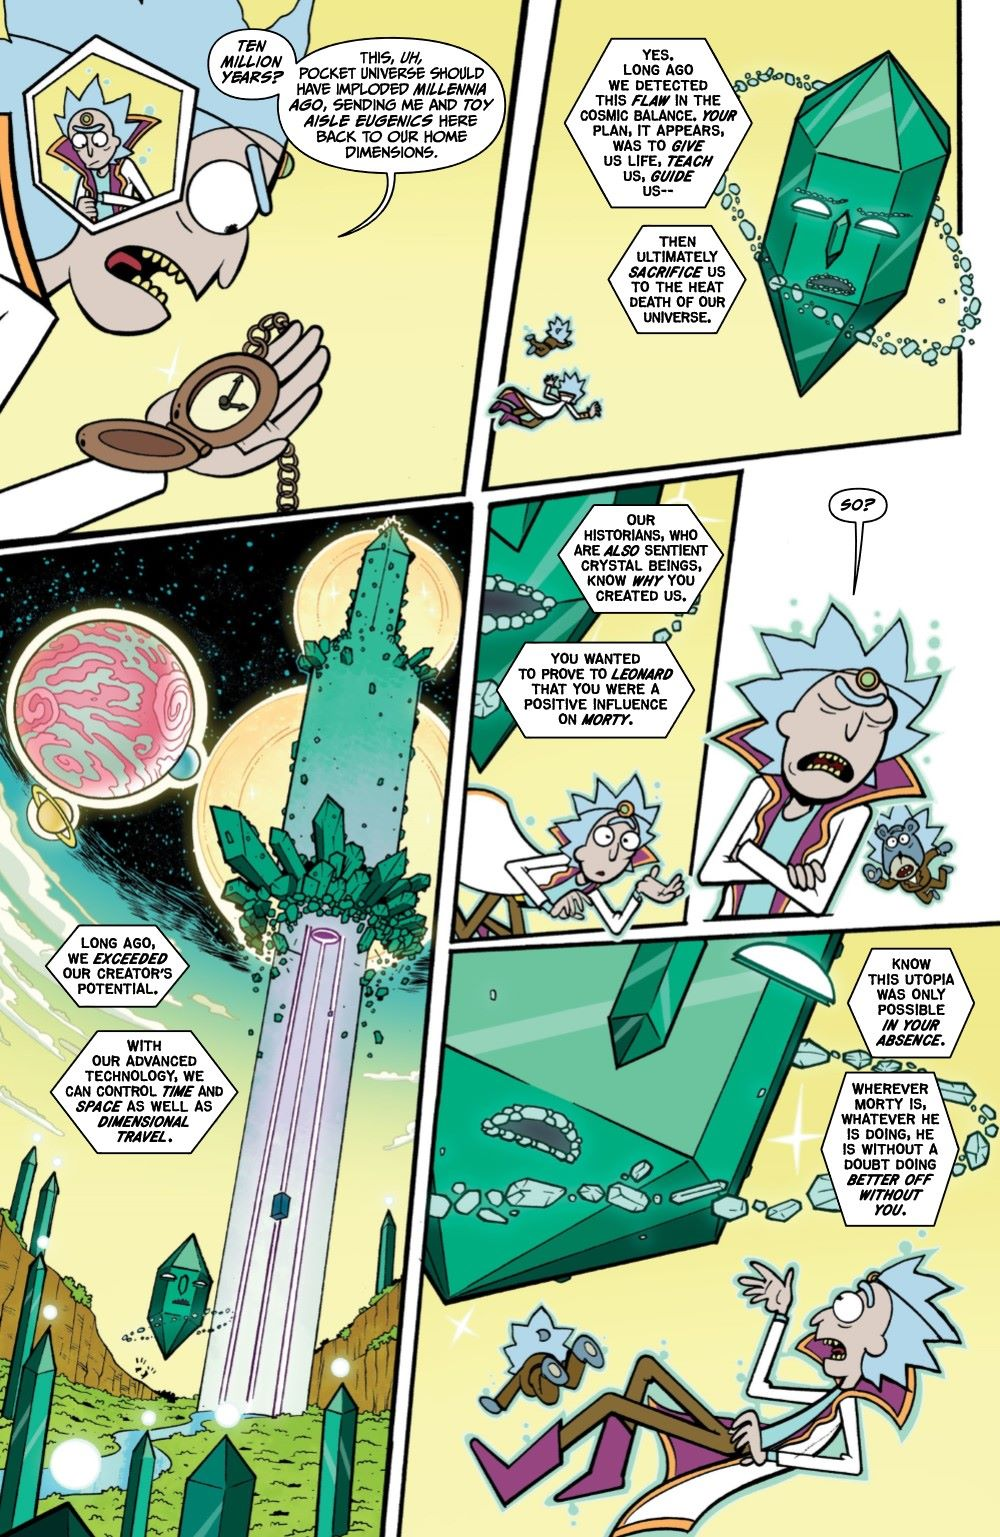 RICKMORTY-WORLDSAPART-4-REFERENCE-05 ComicList Previews: RICK AND MORTY WORLDS APART #4